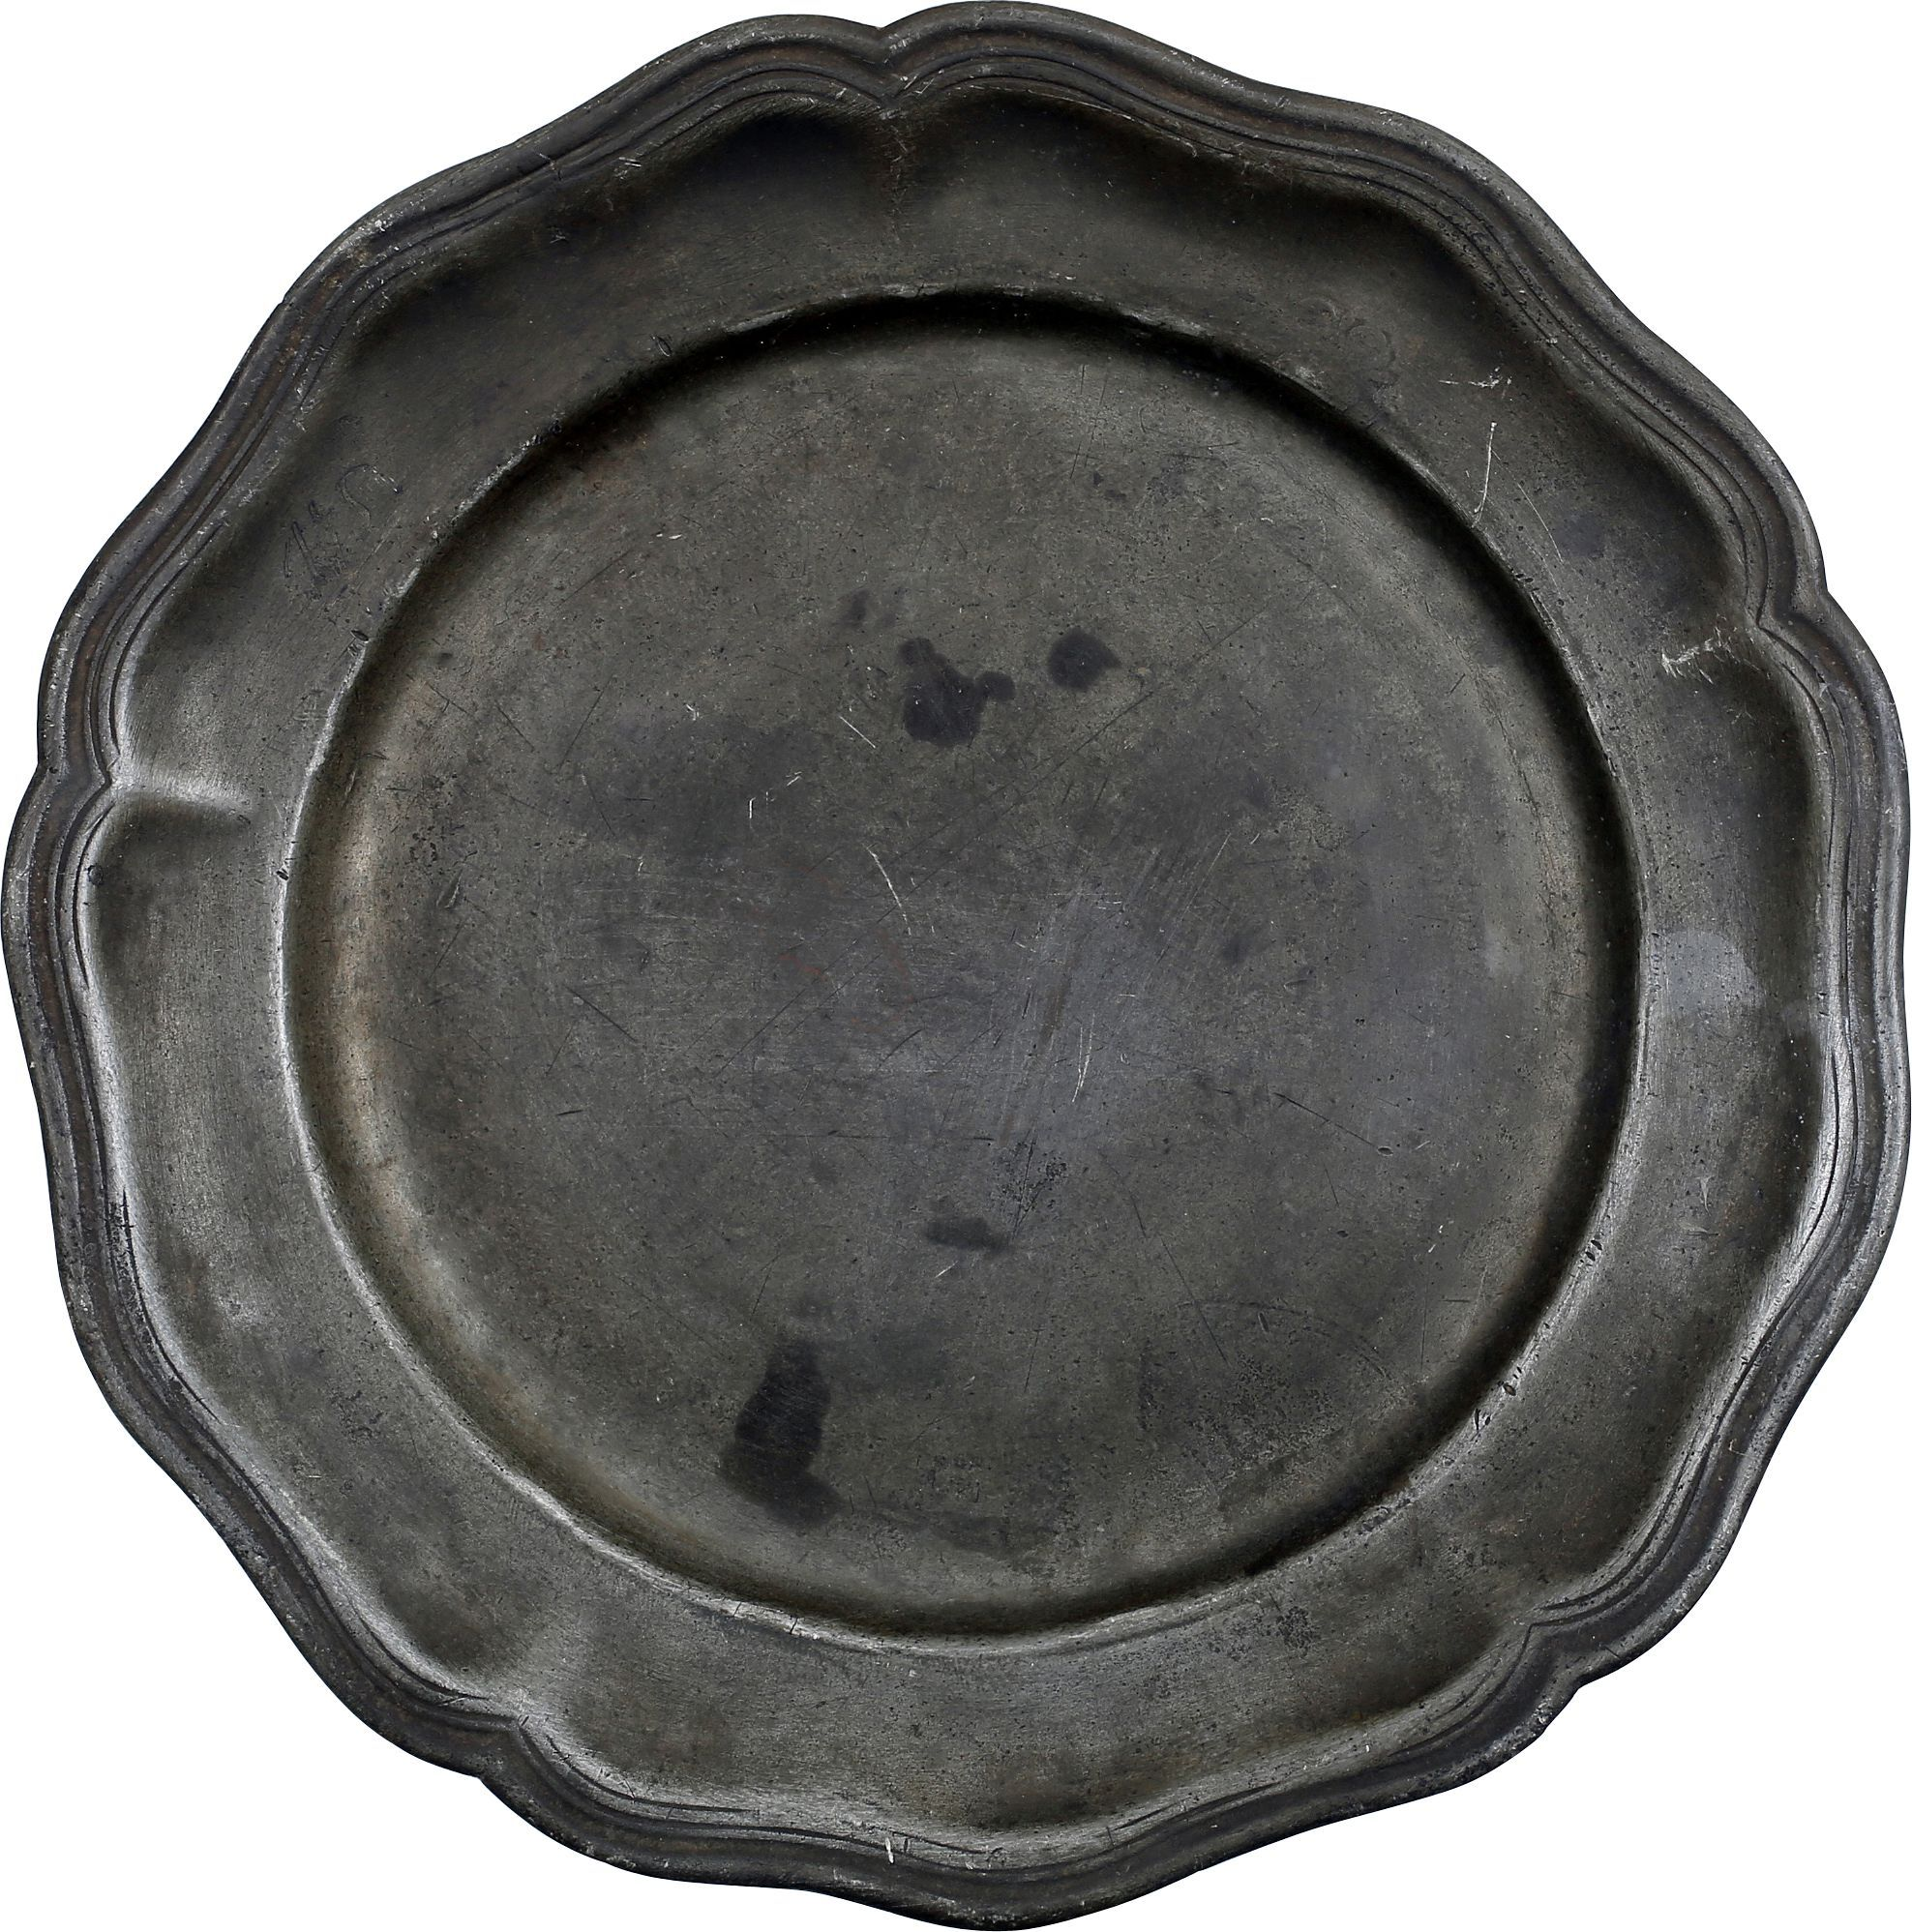 18th CENTURY FRENCH PEWTER PLATE - Fagan Arms